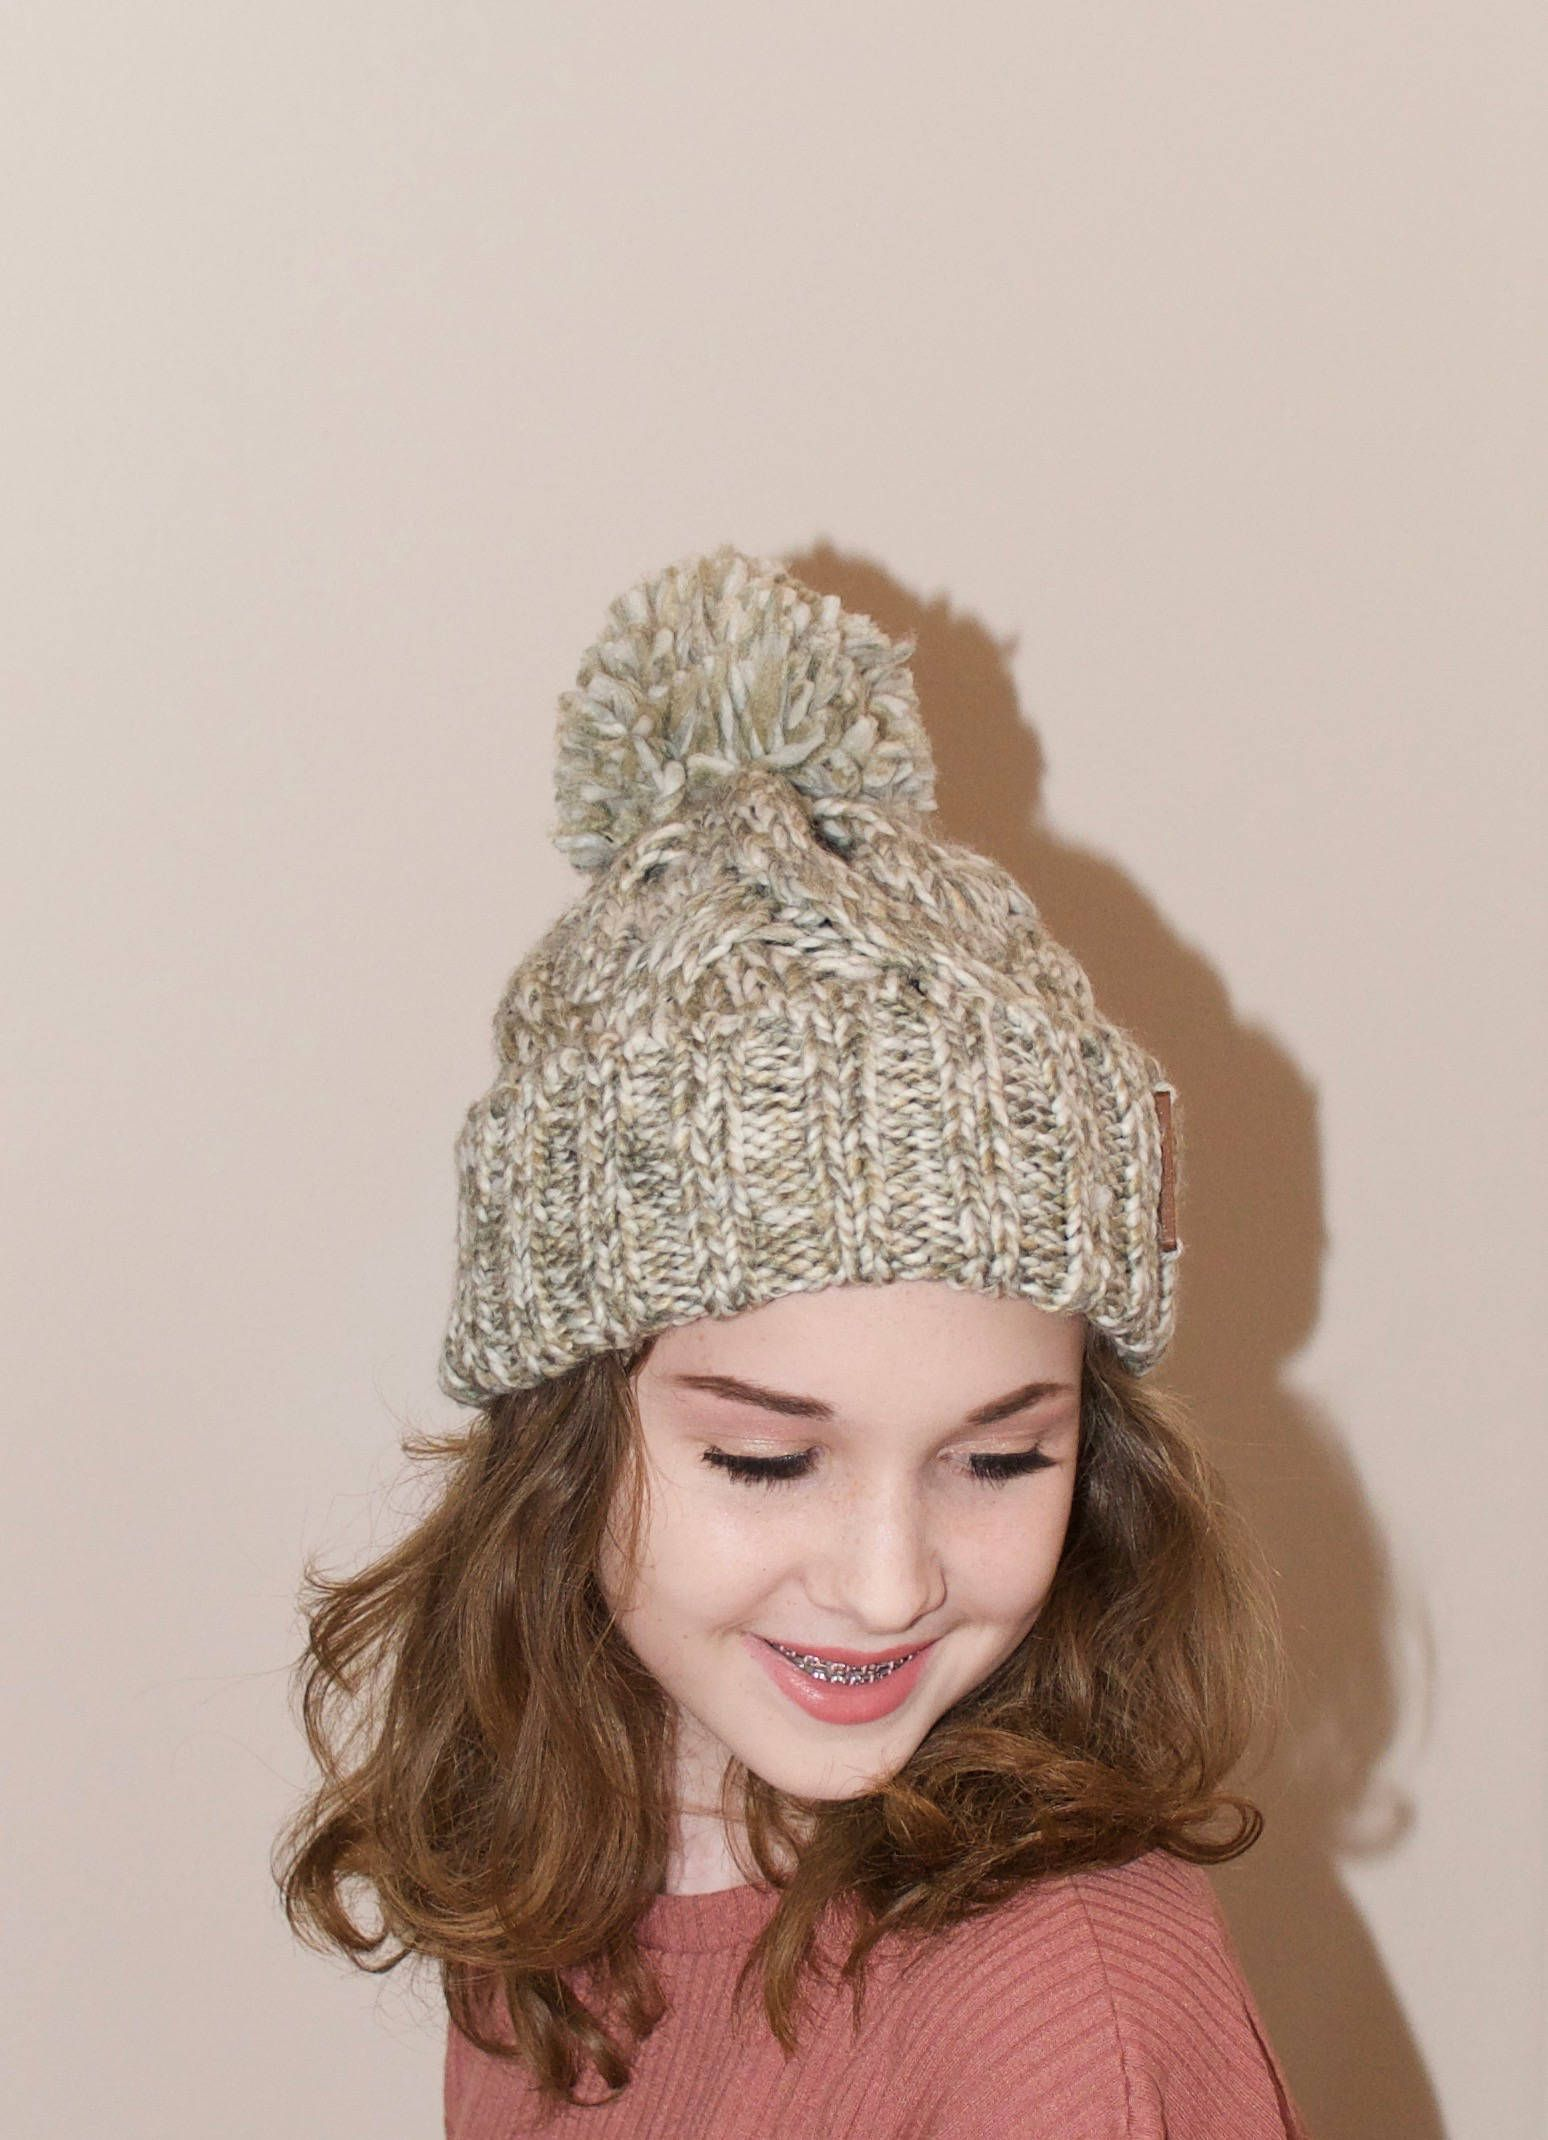 7d5a4b4a716 Pom Pom Beanie Chunky Beanie Hat Winter Hat Teen Girl Hat Ski Hat CHOOSE  COLOR Pumpkin Spice Gray Beanie Teen Girl Christmas Gift under 50 by  lucymir on ...